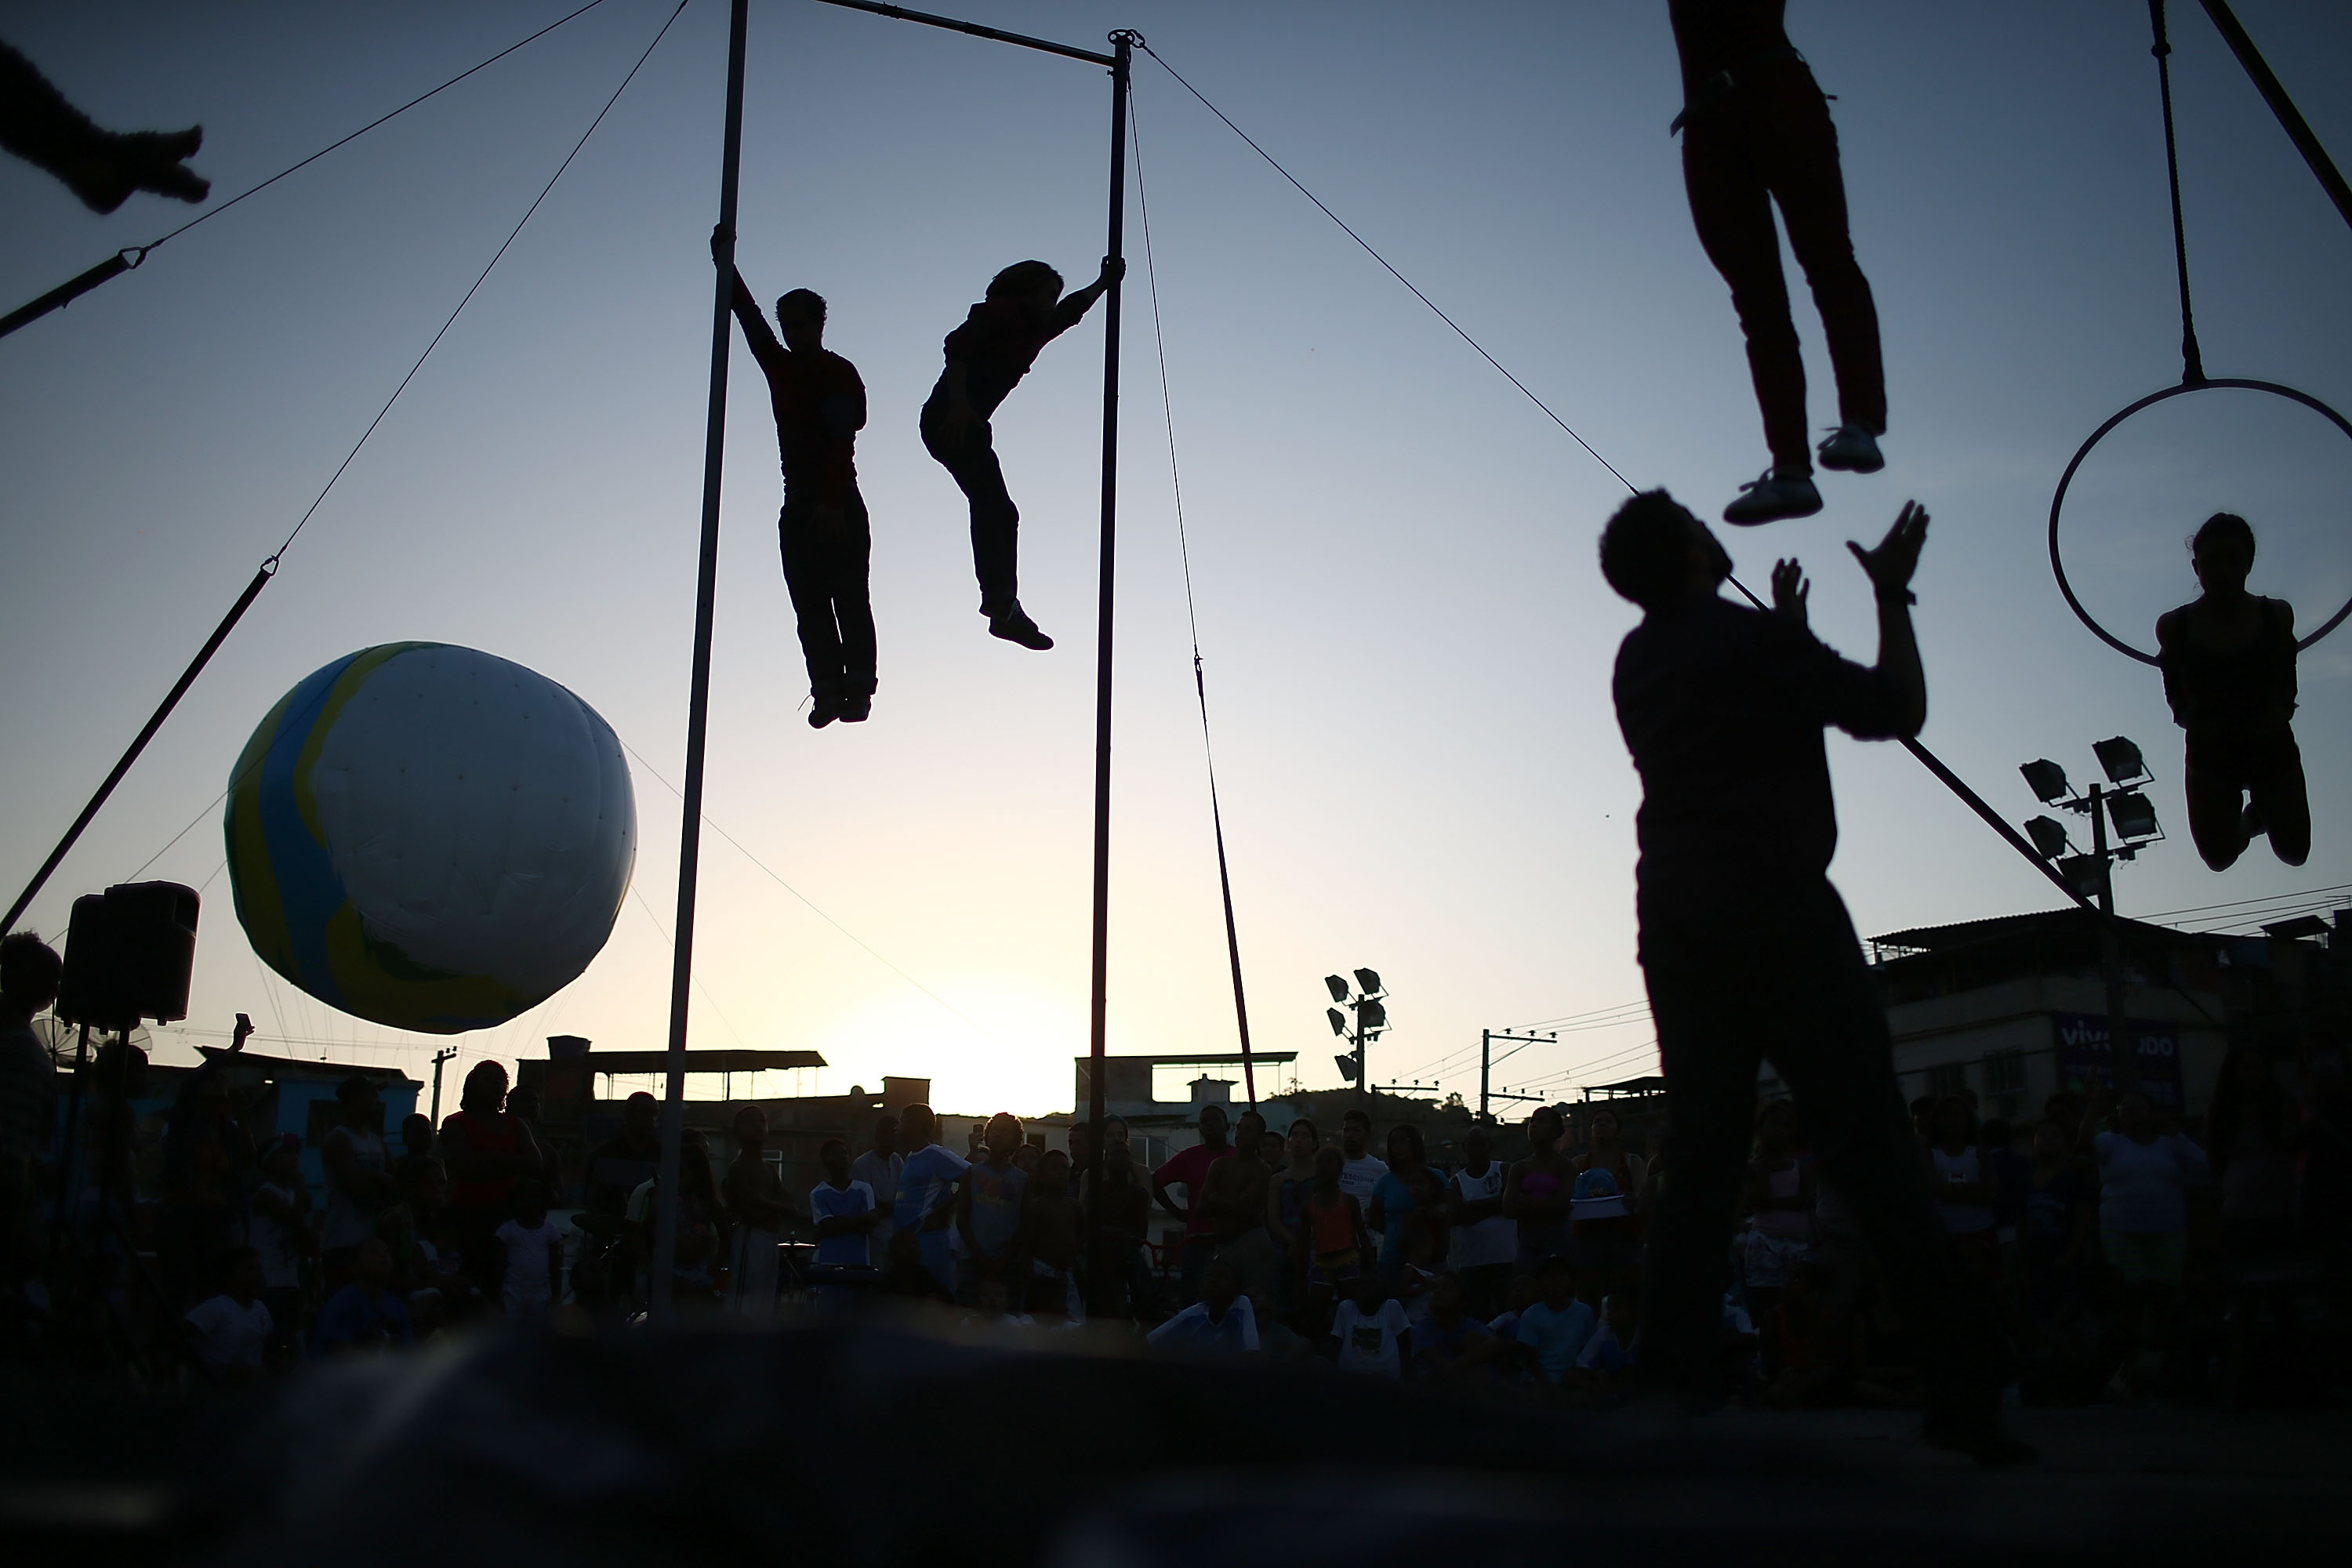 Artists from the Cia Base circus group perform in the show Futebol Voador (Flying Soccer) during the International Circus Festival in the Vila Cruzeiro favela on May 12, 2014 in Rio de Janeiro.